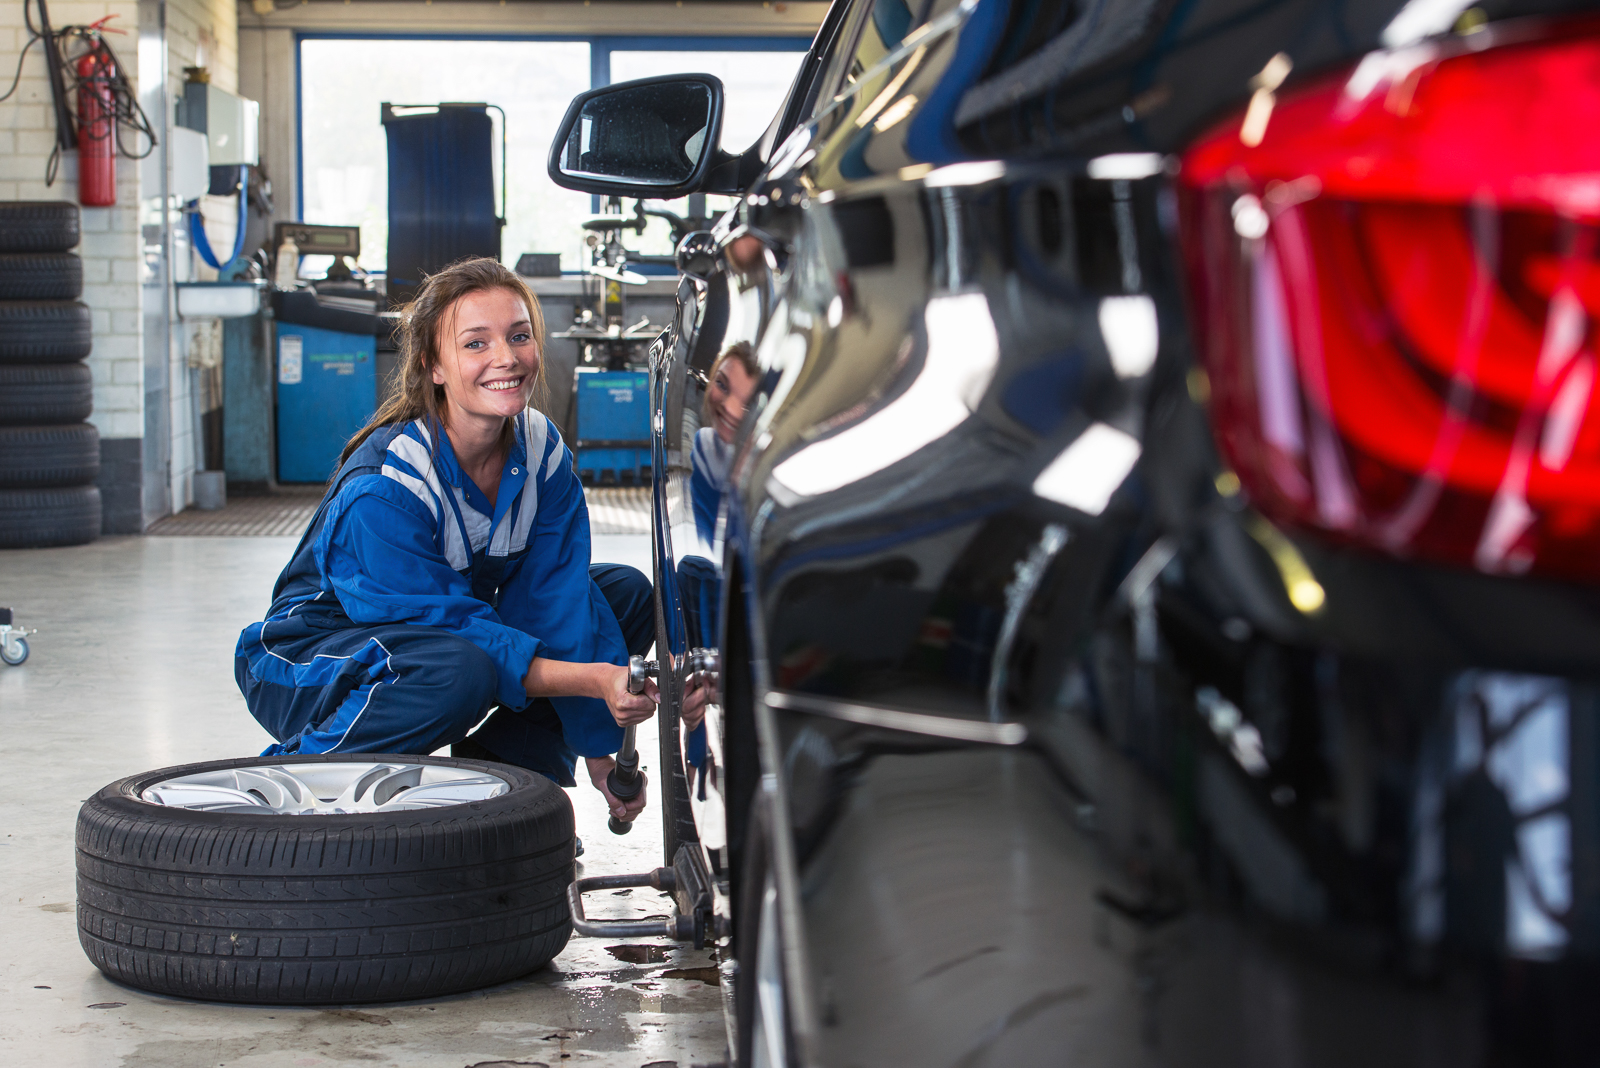 Mechanic, a young woman changing the front tire of a black sedan using a torque wrench in a tire service center garage